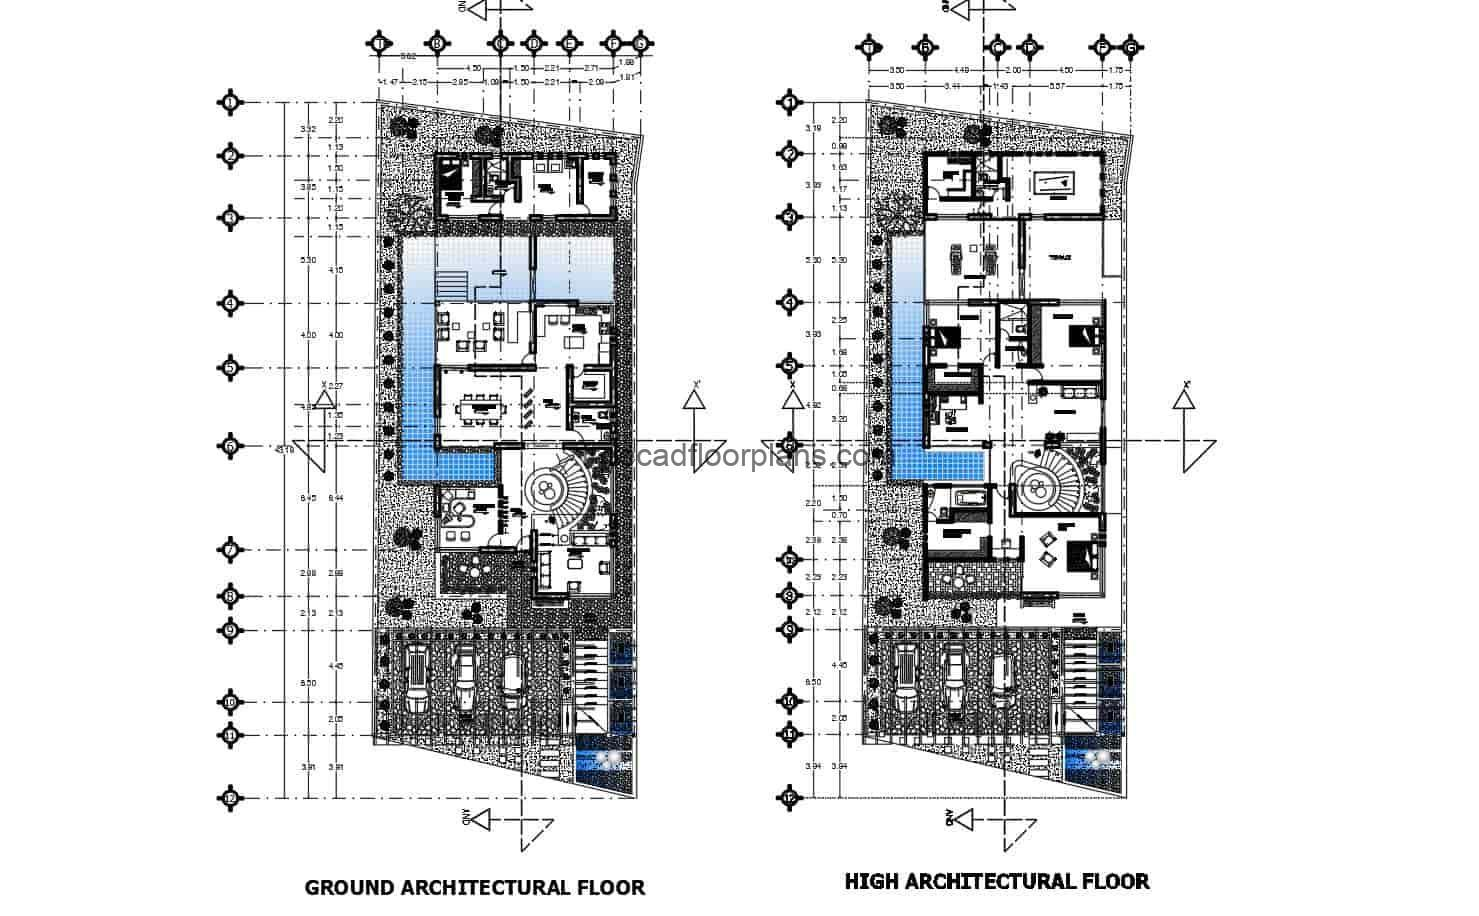 Modern two-level residence complete plan project for free download in DWG format, residence with front and rear terraces and three bedrooms. Dimensioned and architectural blueprints with Autocad blocks.